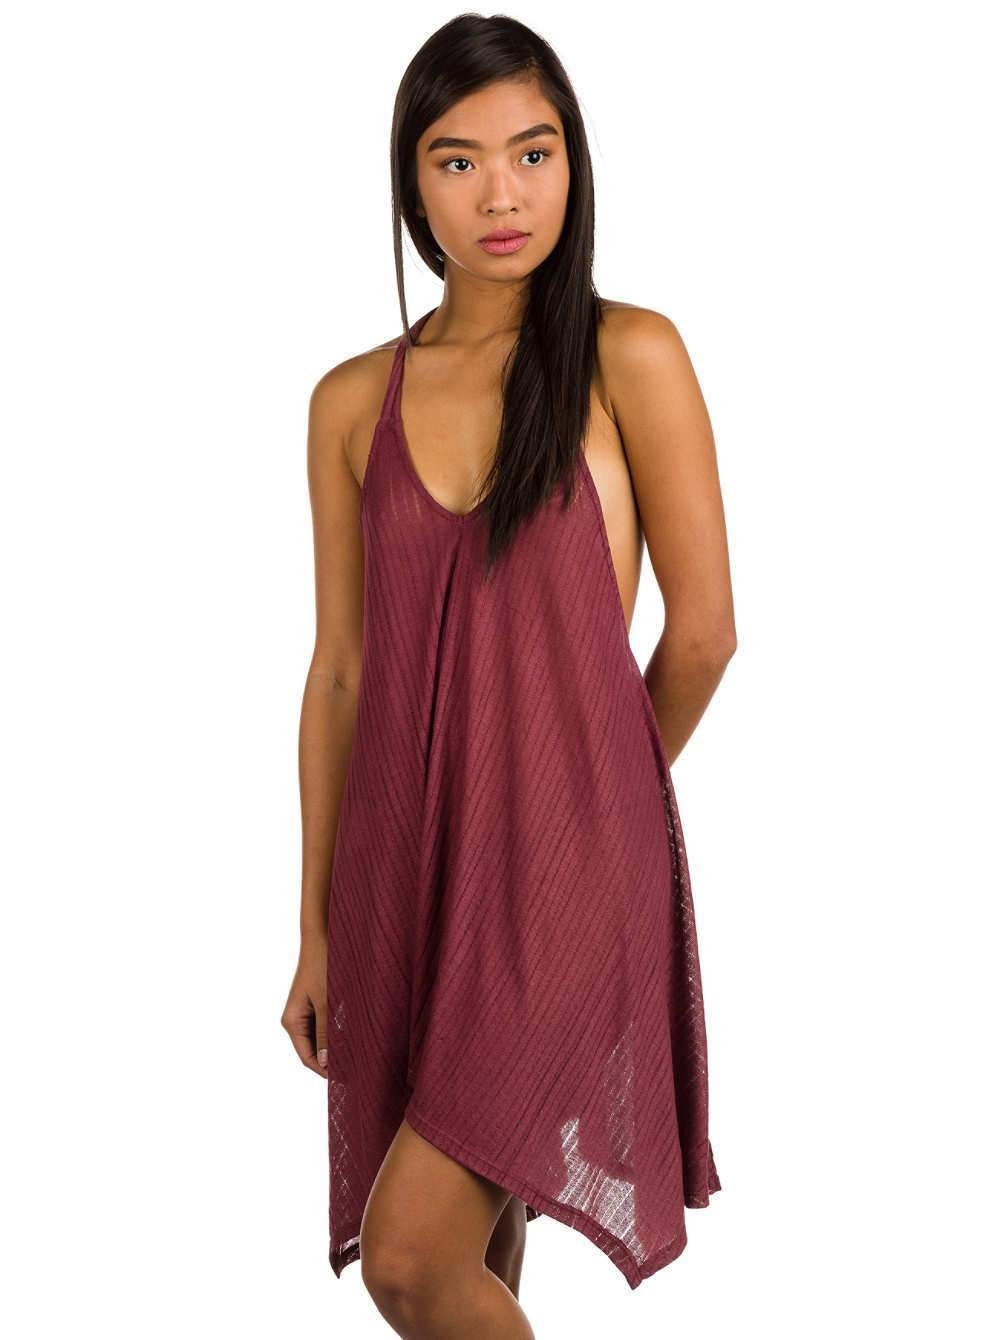 '-Billabong- Women's Apparel - Dresses X-Small / Redwood Z-Billabong - Twisted View